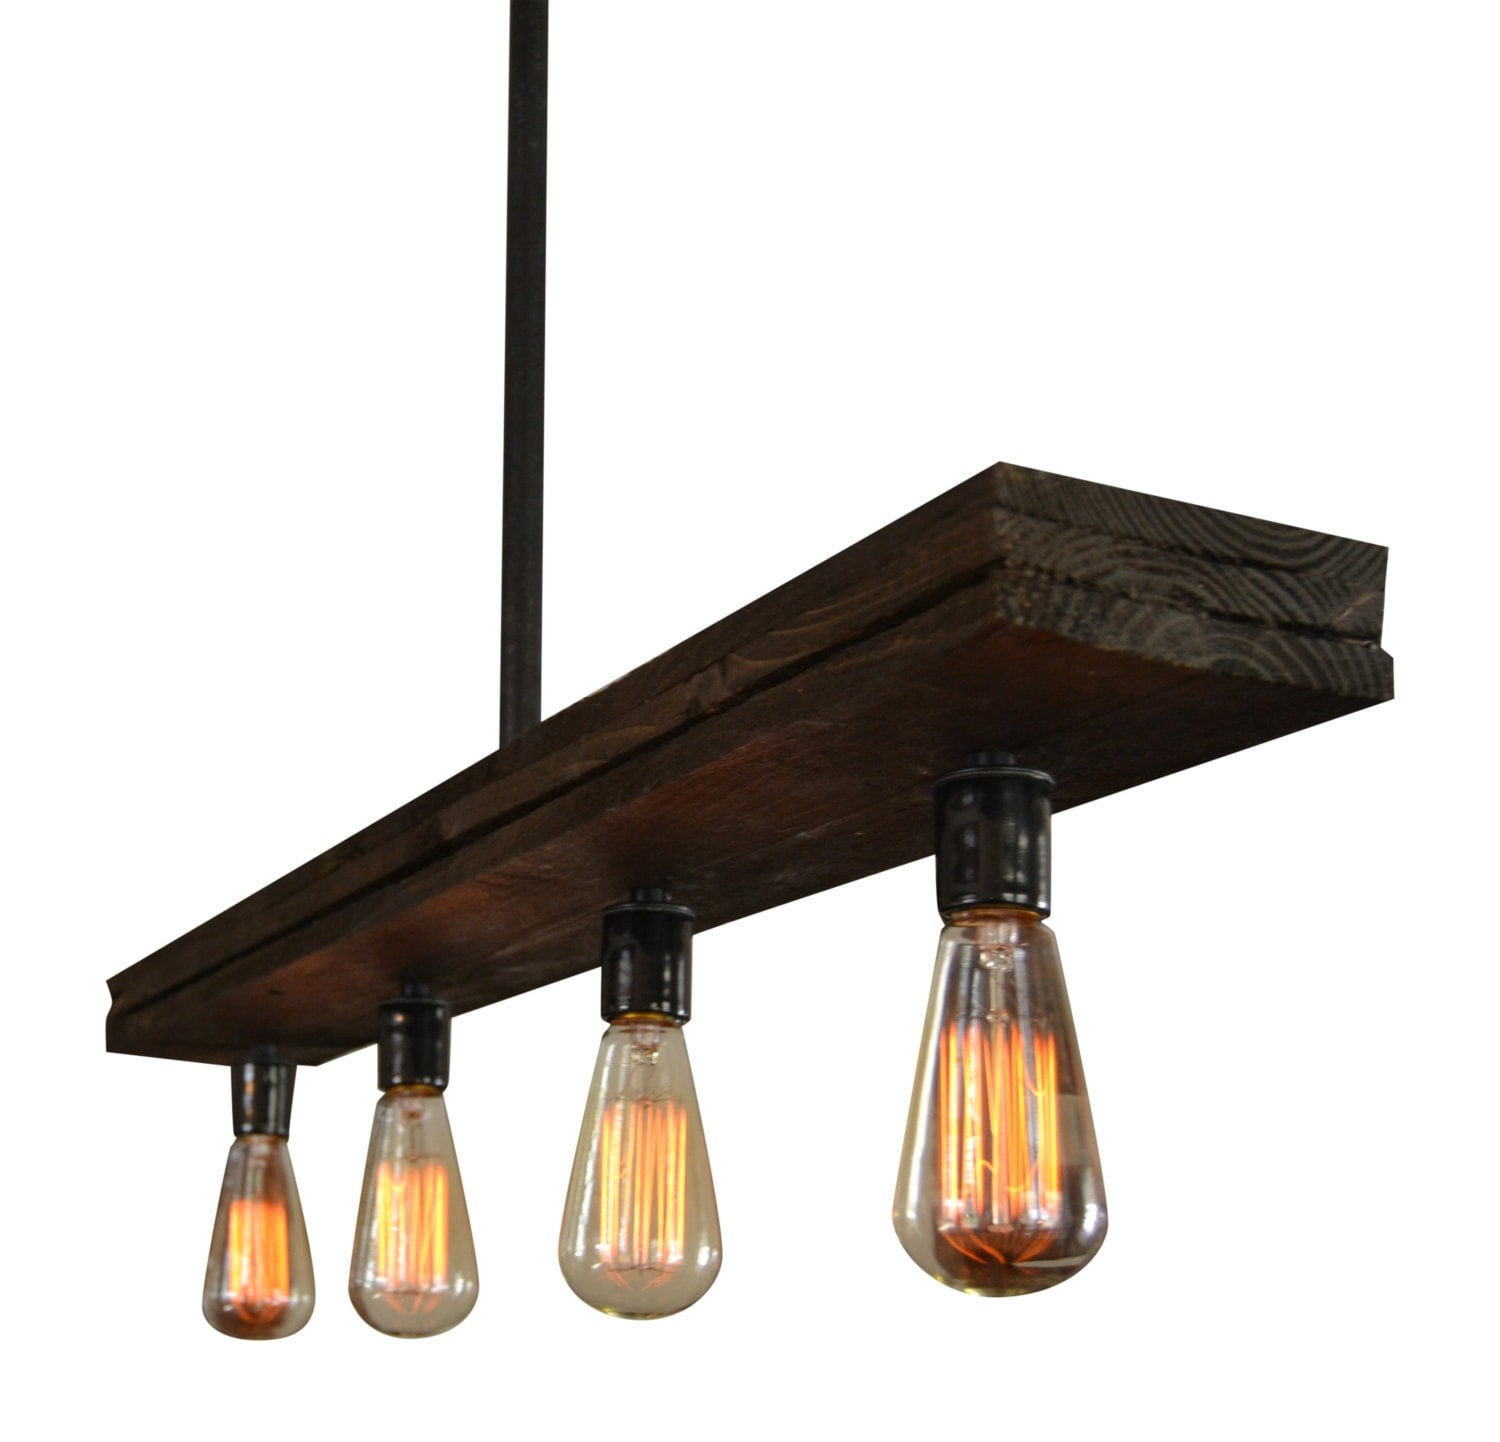 Lighting Farmhouse lighting Ceiling Fixture Light Home